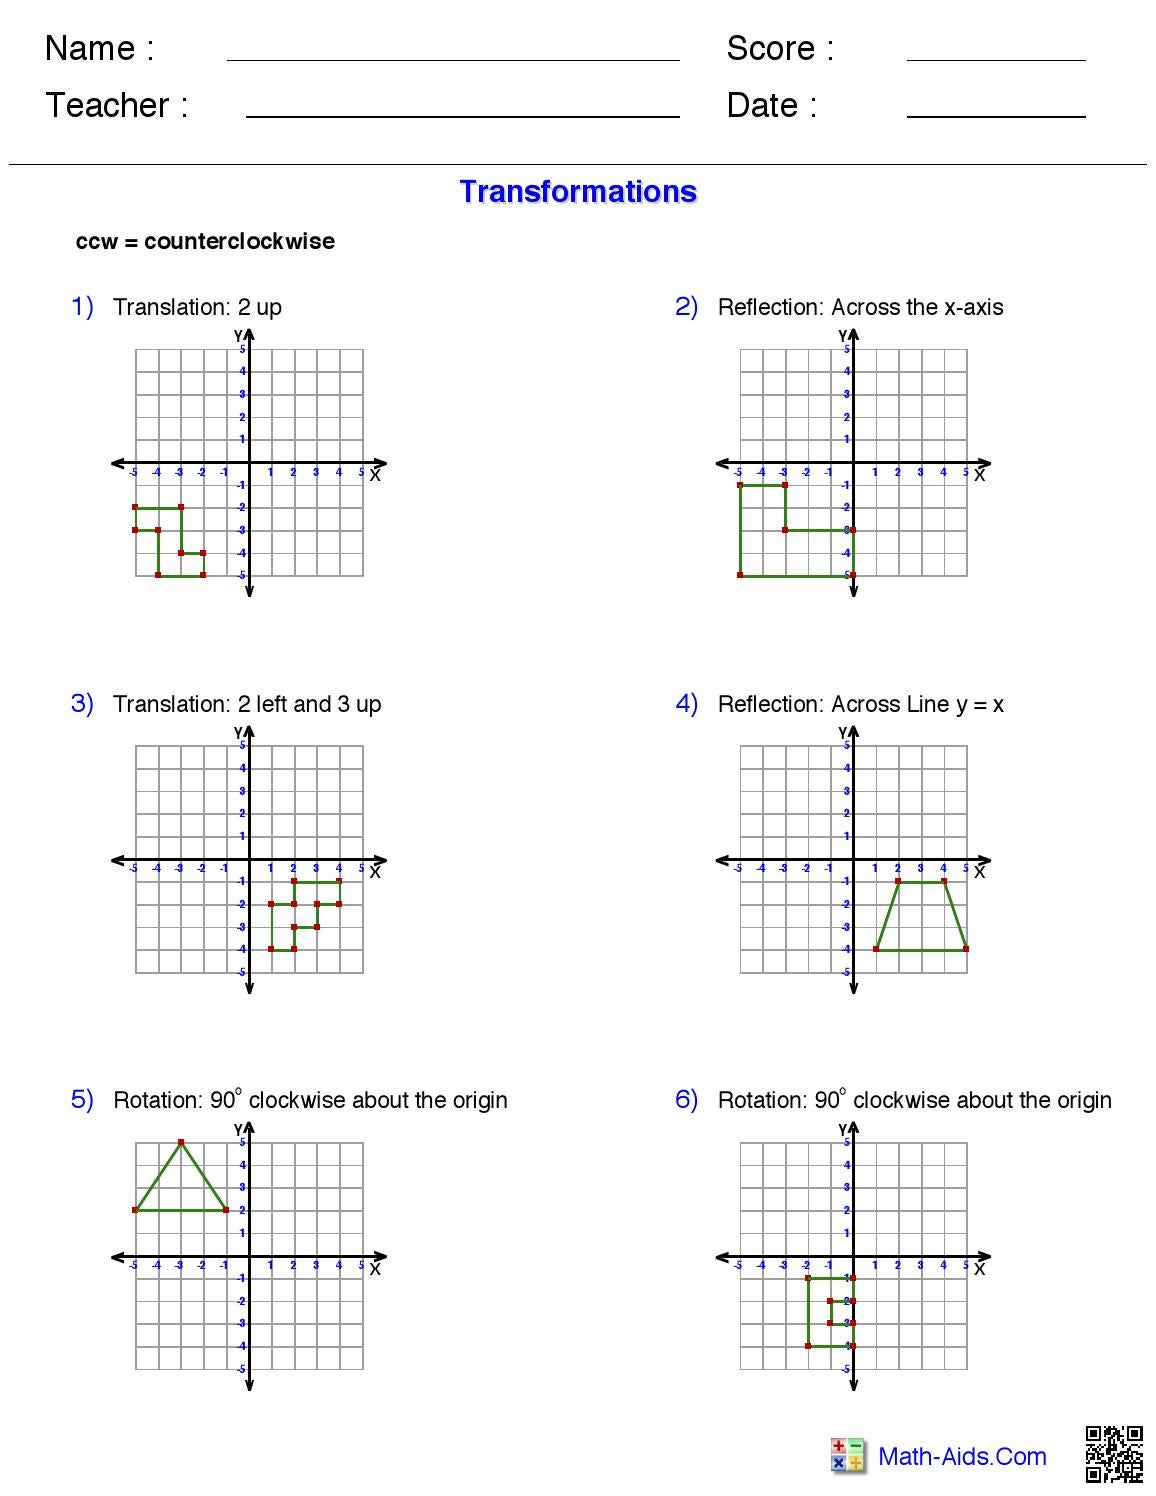 Transformations Work Sheet From Math Aids Com By Morgan